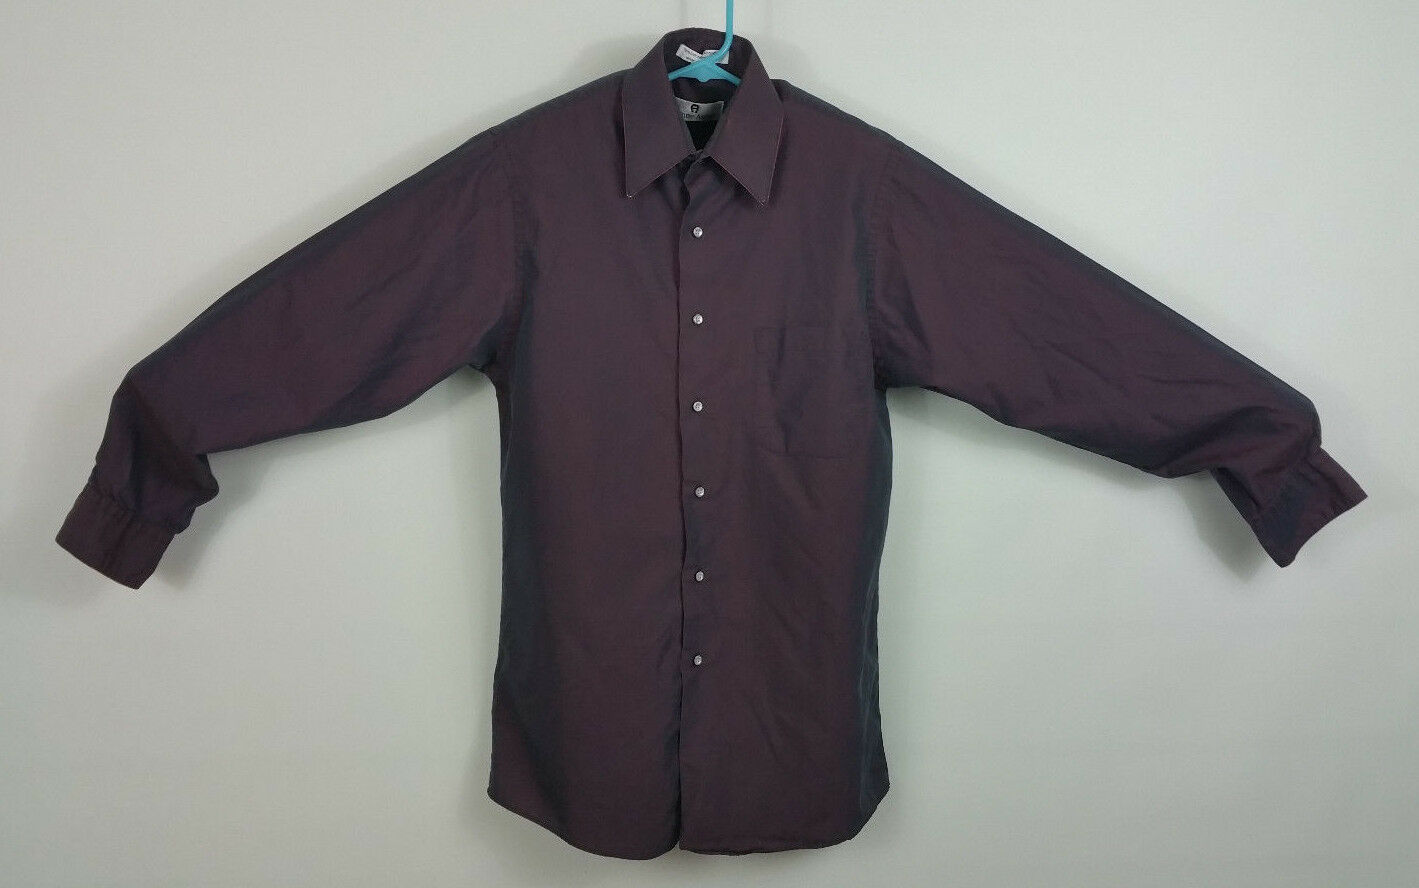 Etienne Aigner wine red gabardine size 15 long sleeve shirt with flaw see pics